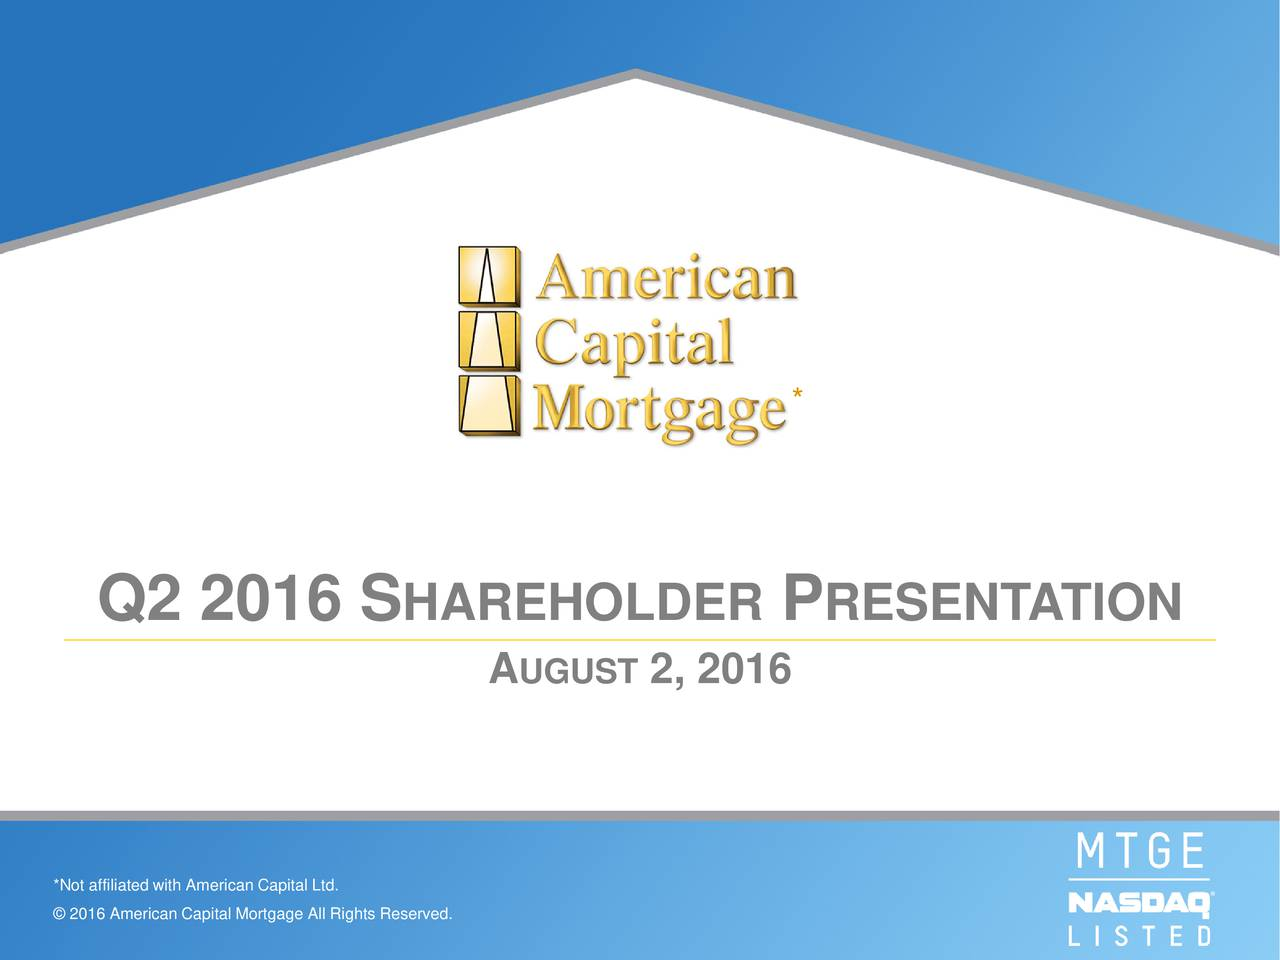 Q2 2016 S HAREHOLDER P RESENTATION A UGUST2, 2016 *Not affiliated with American Capital Ltd. 2016 American Capital Mortgage All Rights Reserved.